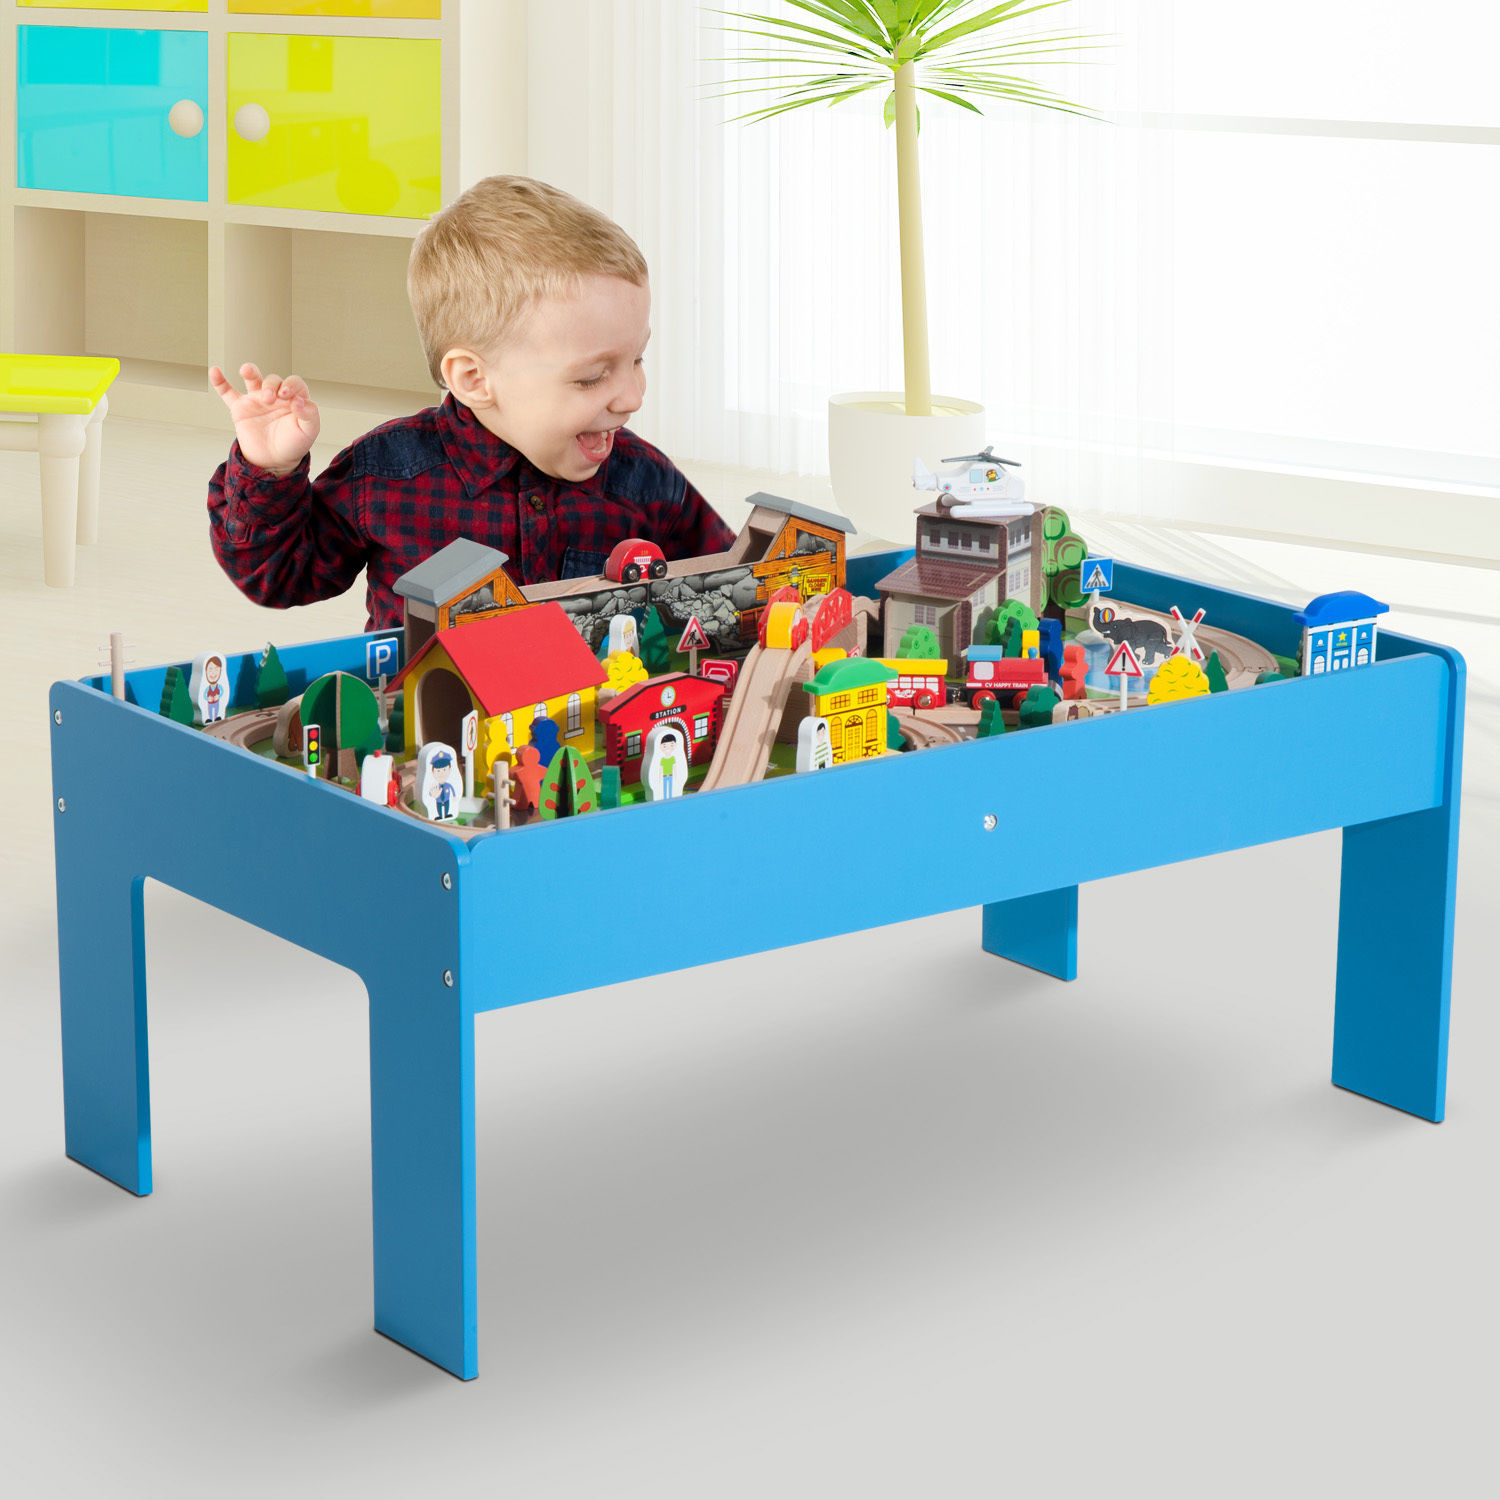 108pc / 83pc Wooden Train Set Table Track Kids Toy Pretend Play ...